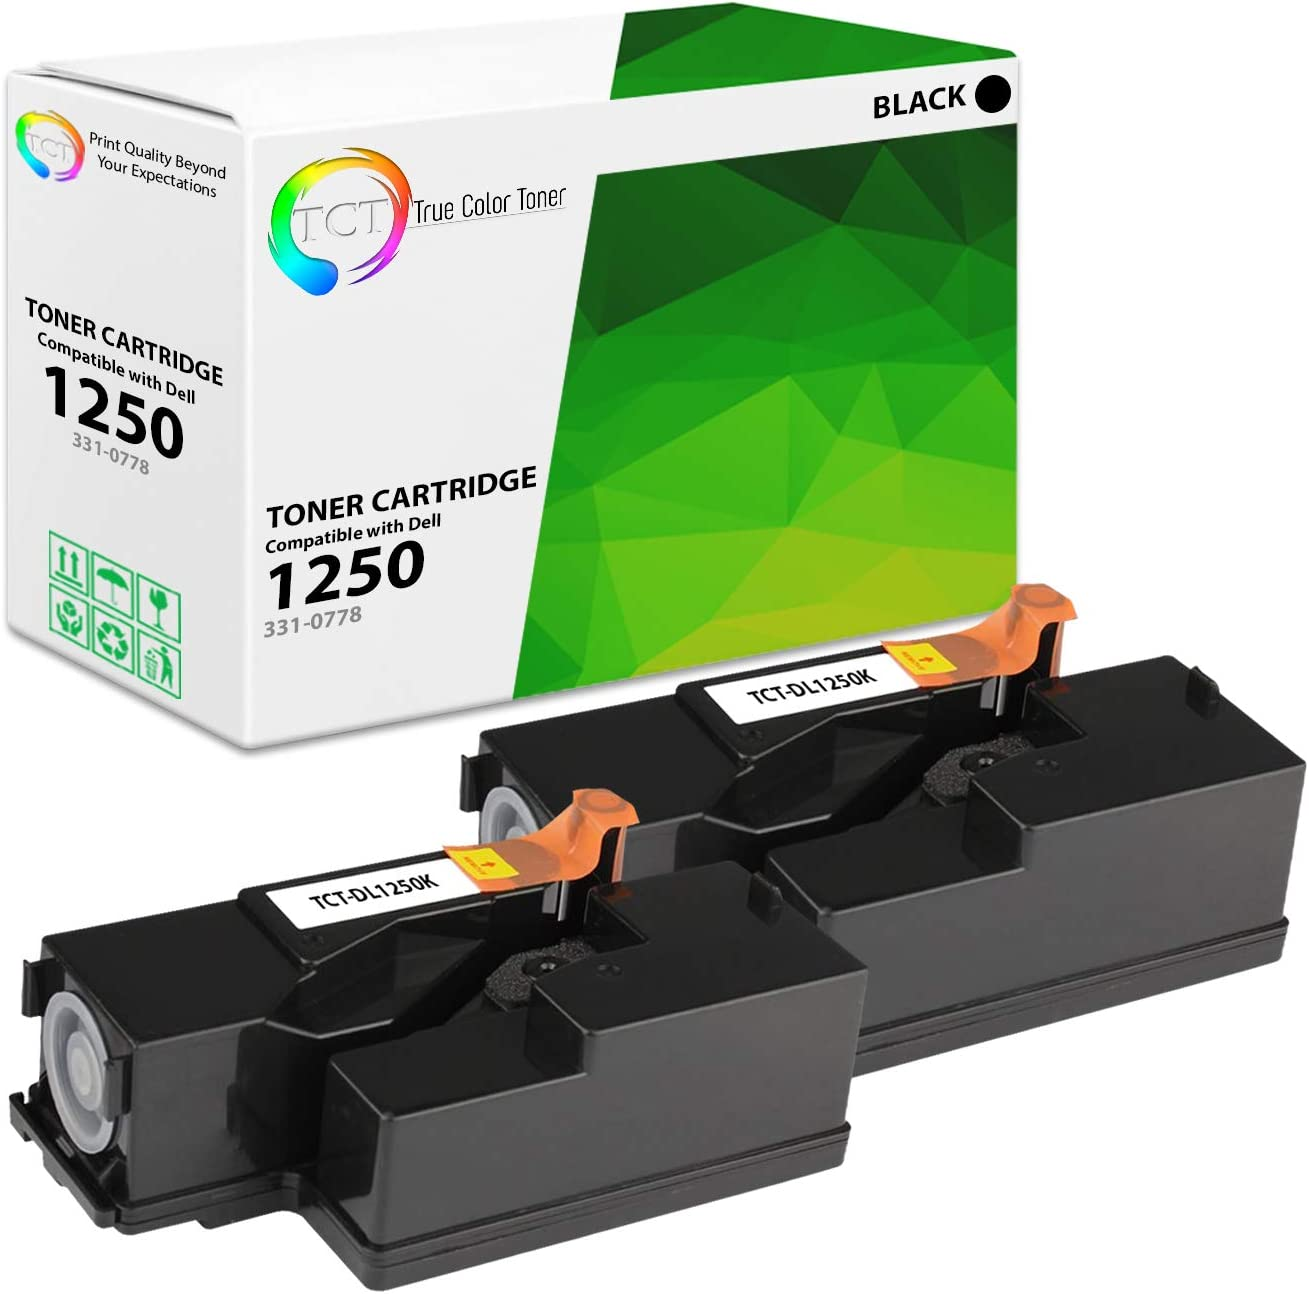 TCT Premium Compatible Toner Cartridge Replacement for Dell 331-0778 Black Works with Dell 1350CNW 1355CN, C1760NW C1765NF Printers (2,000 Pages) - 2 Pack